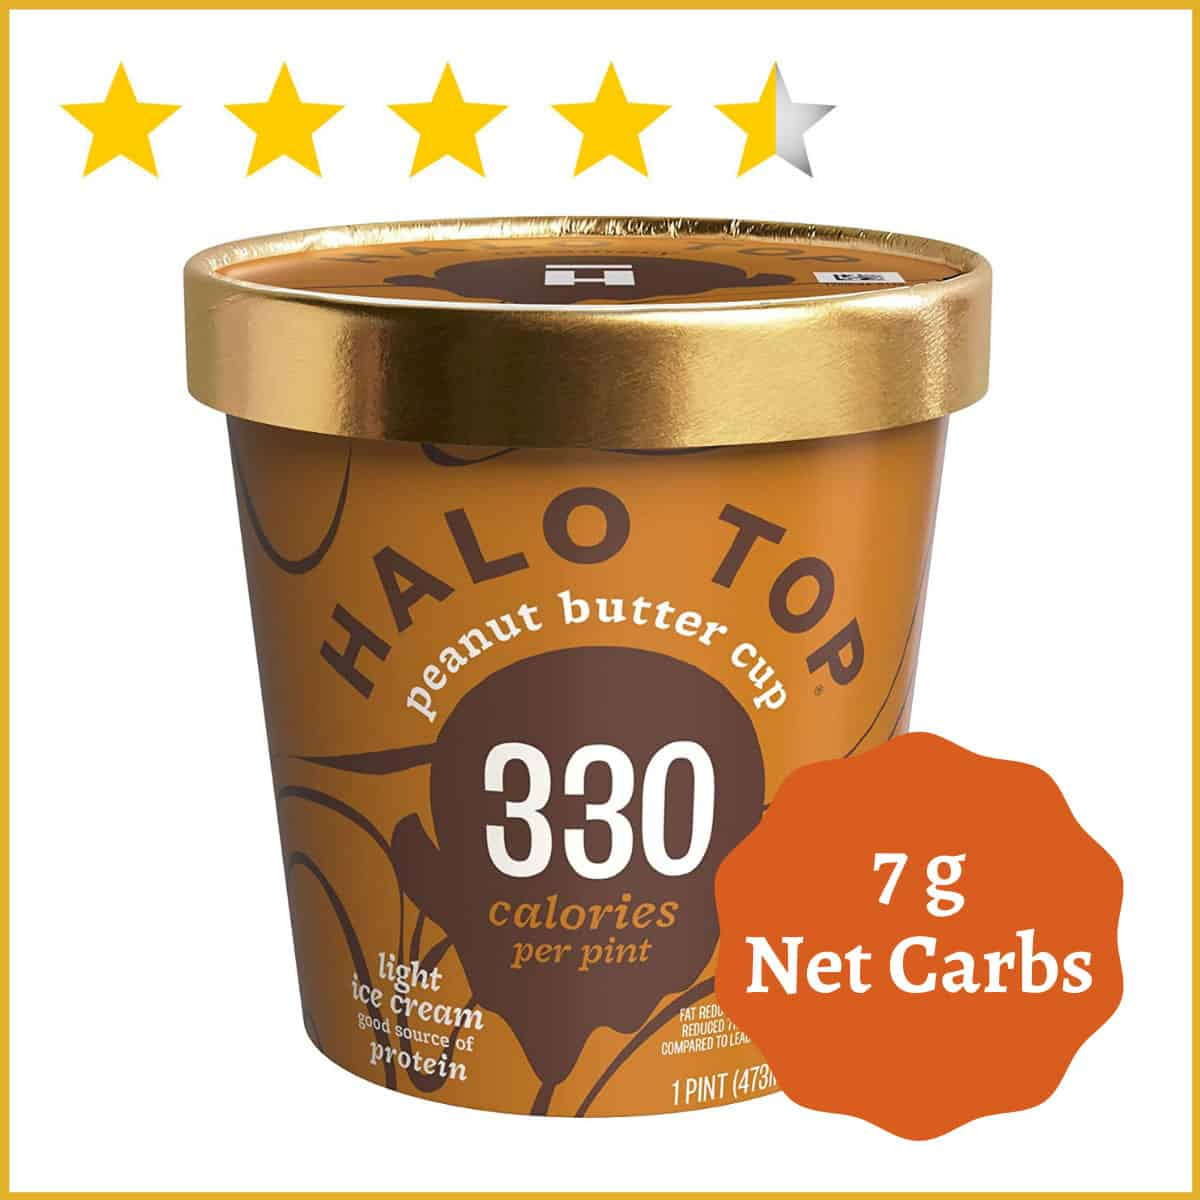 Halo Top Creamery, Peanut Butter Cup